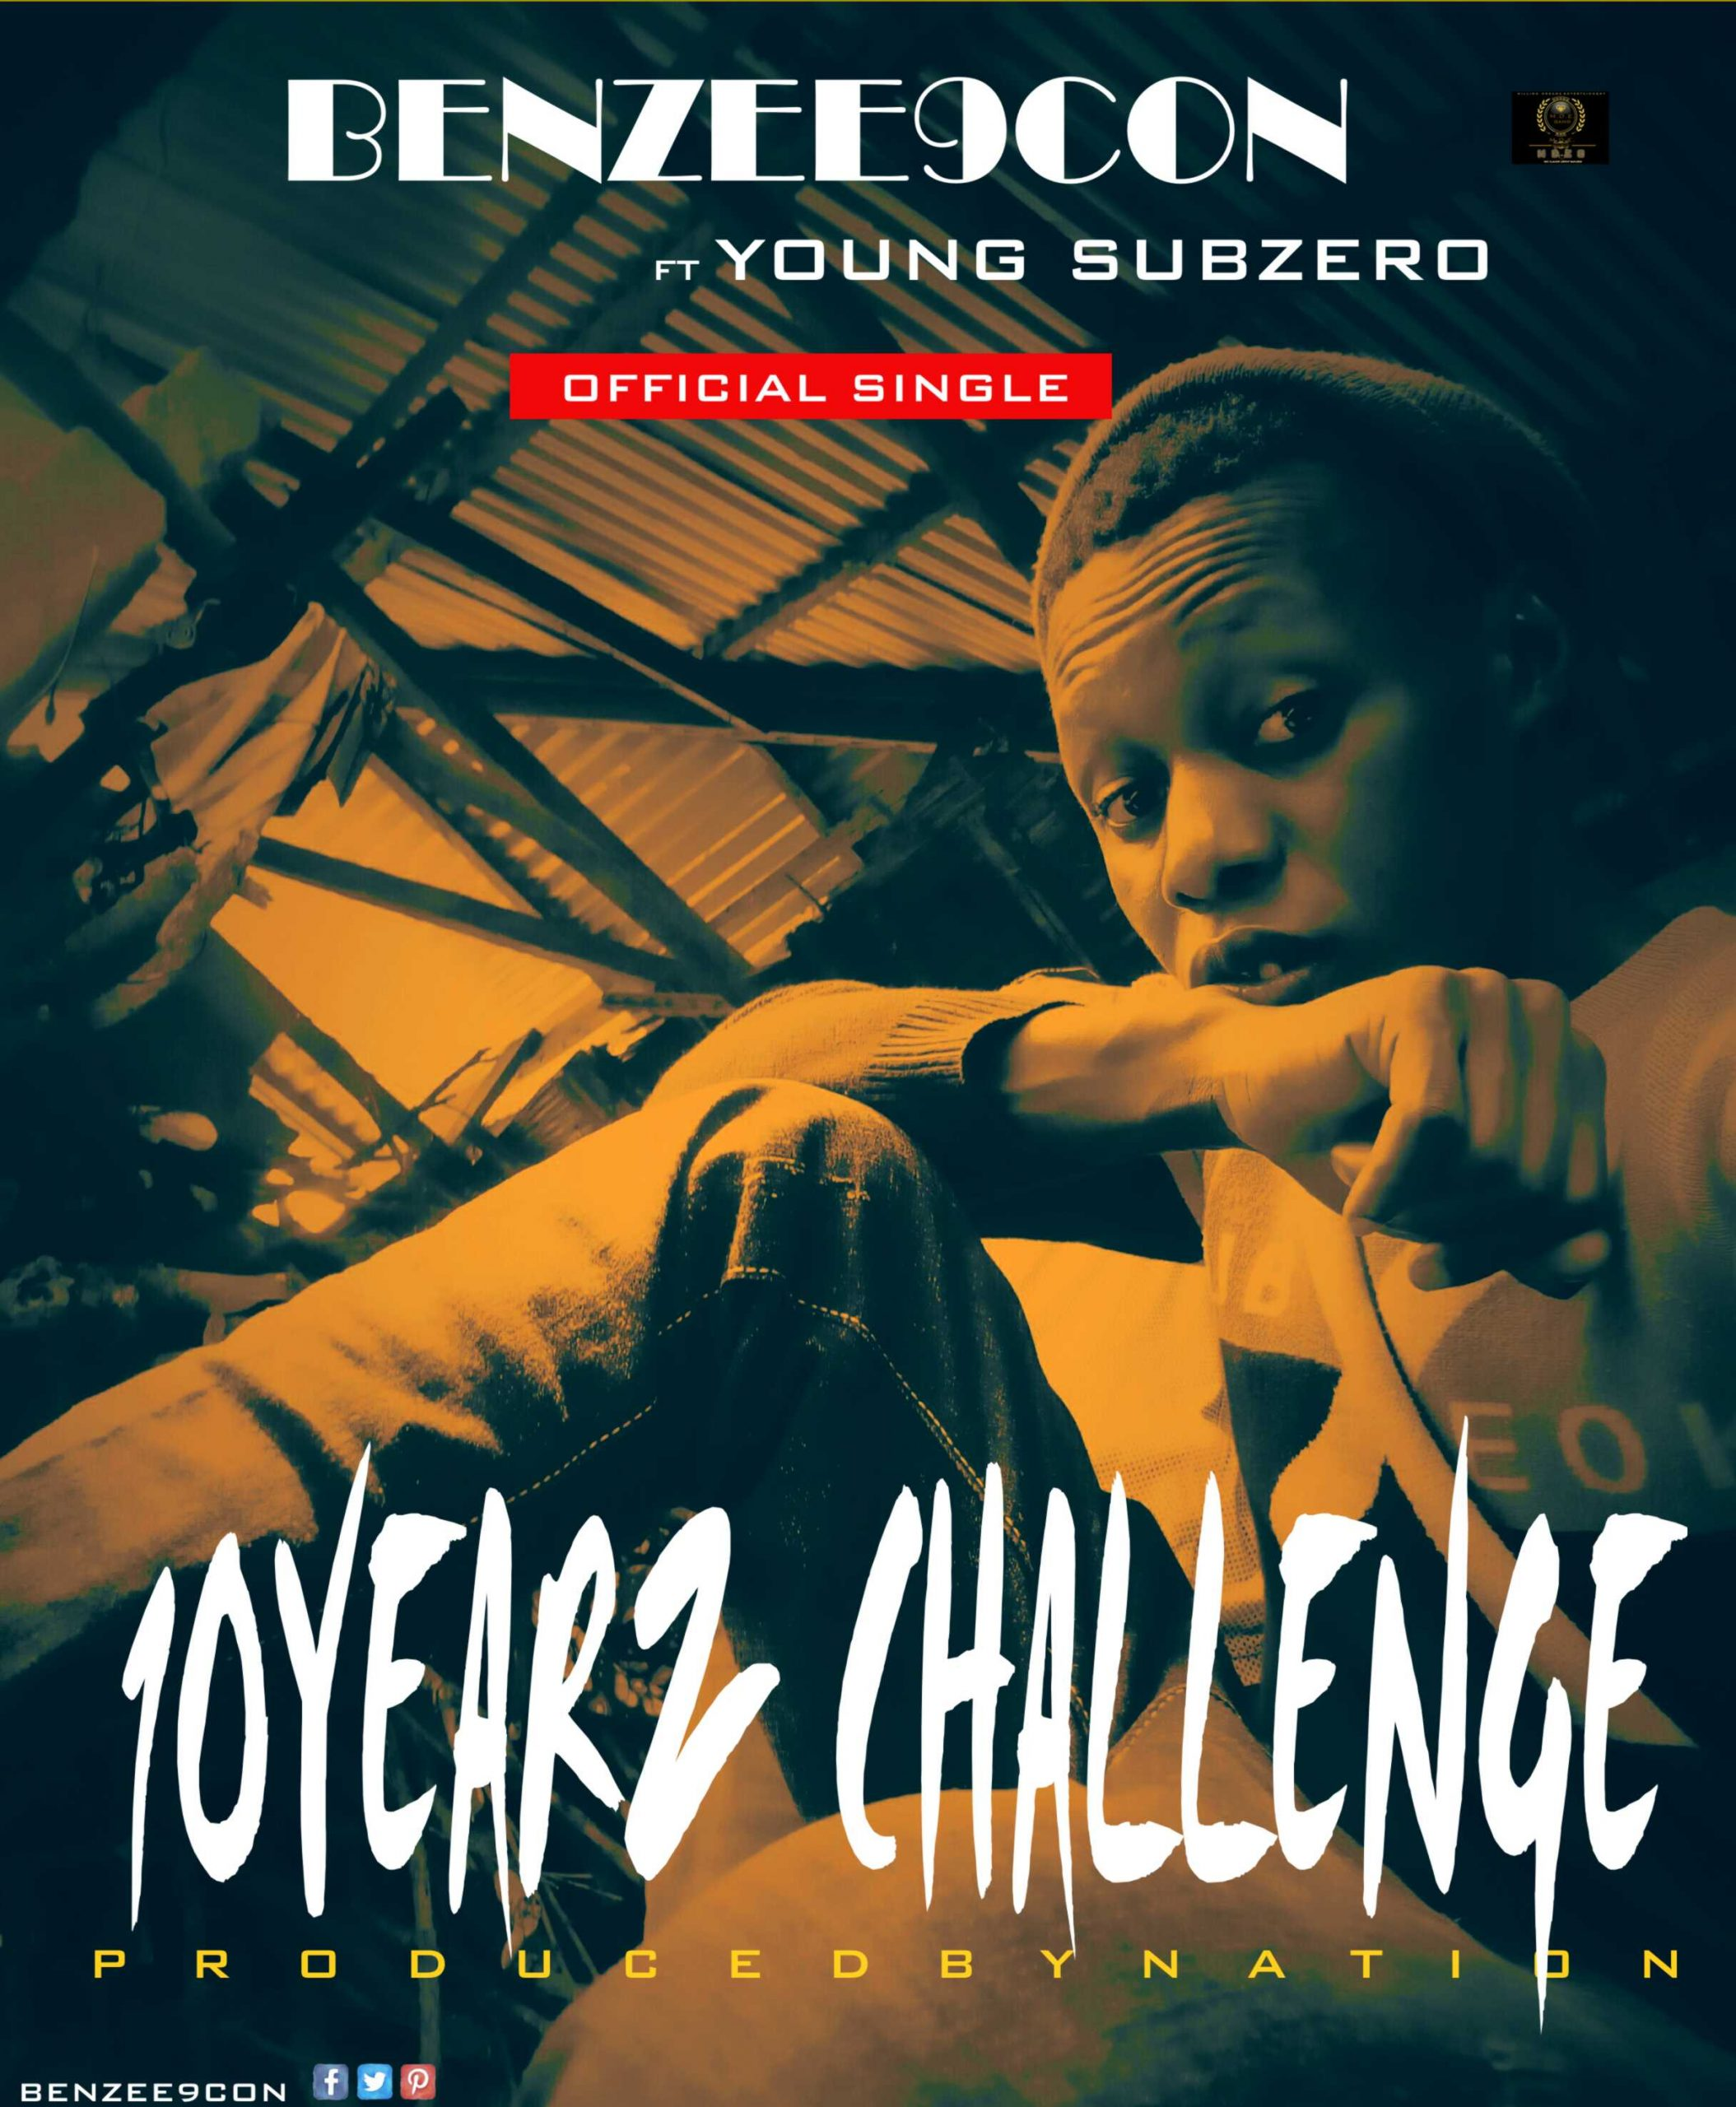 Download 10 years challenge by Benzee9con ft Yungsubzero